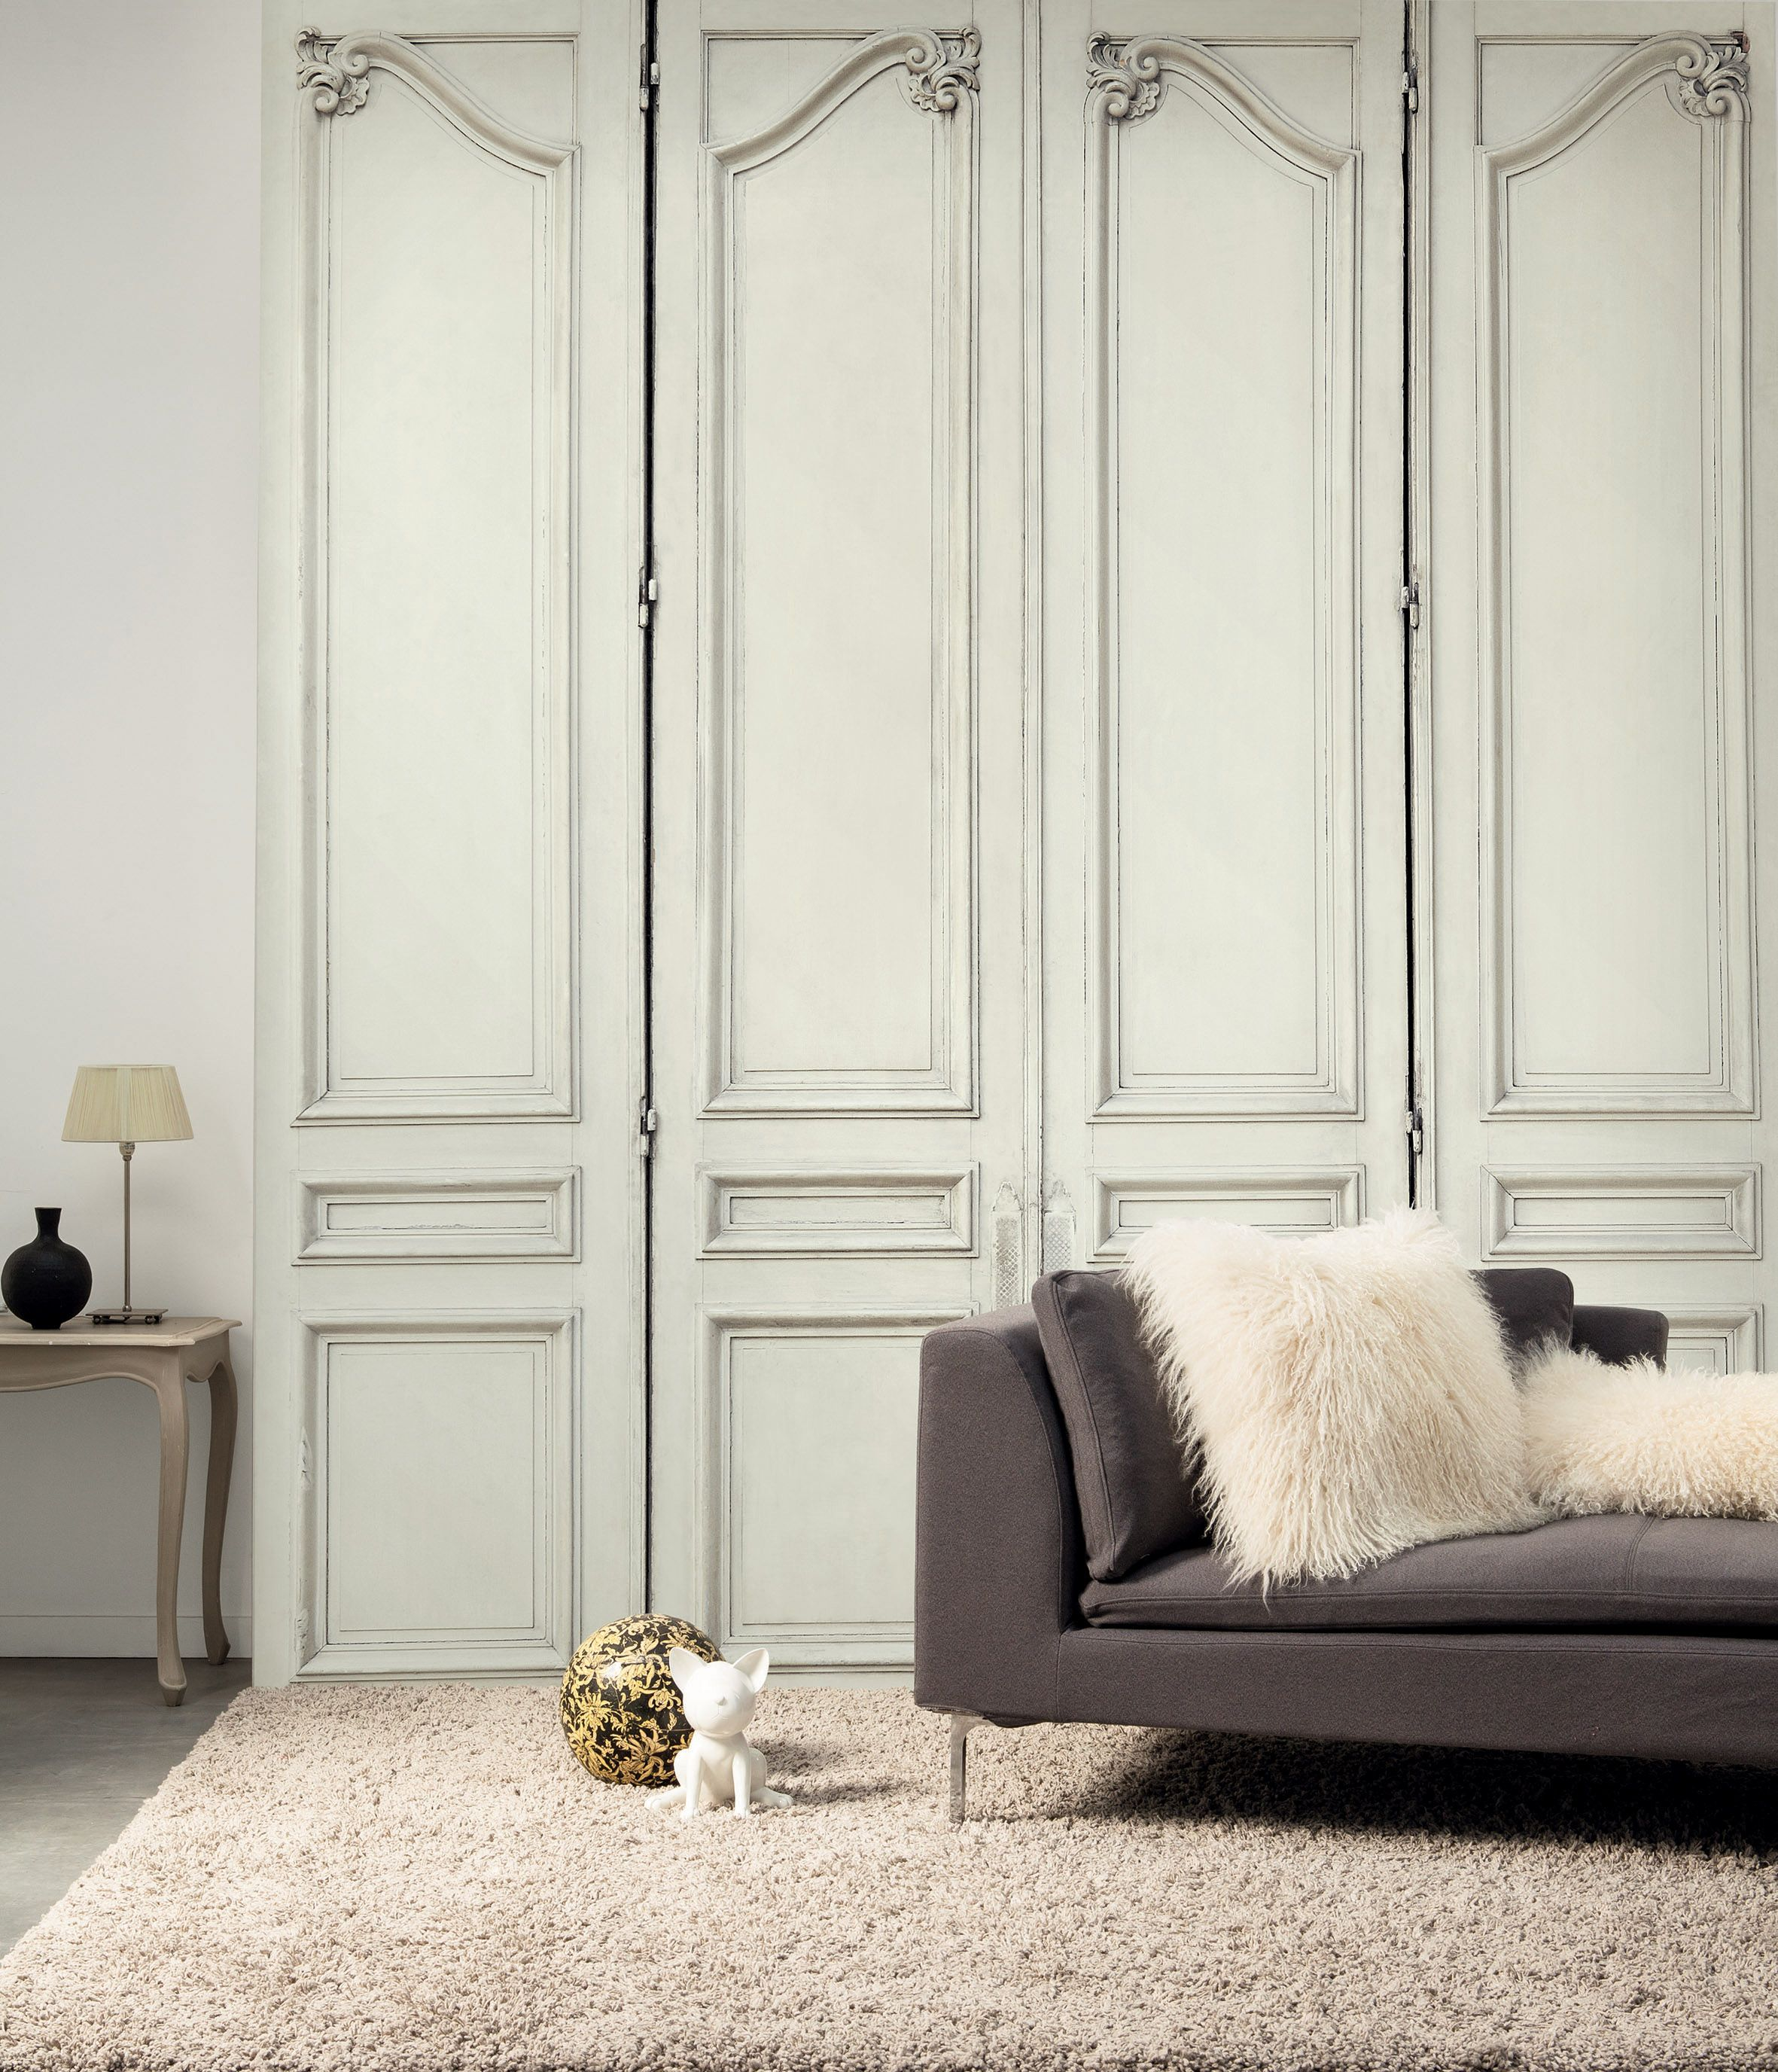 collection metaphore panoramique porte louis xv. Black Bedroom Furniture Sets. Home Design Ideas